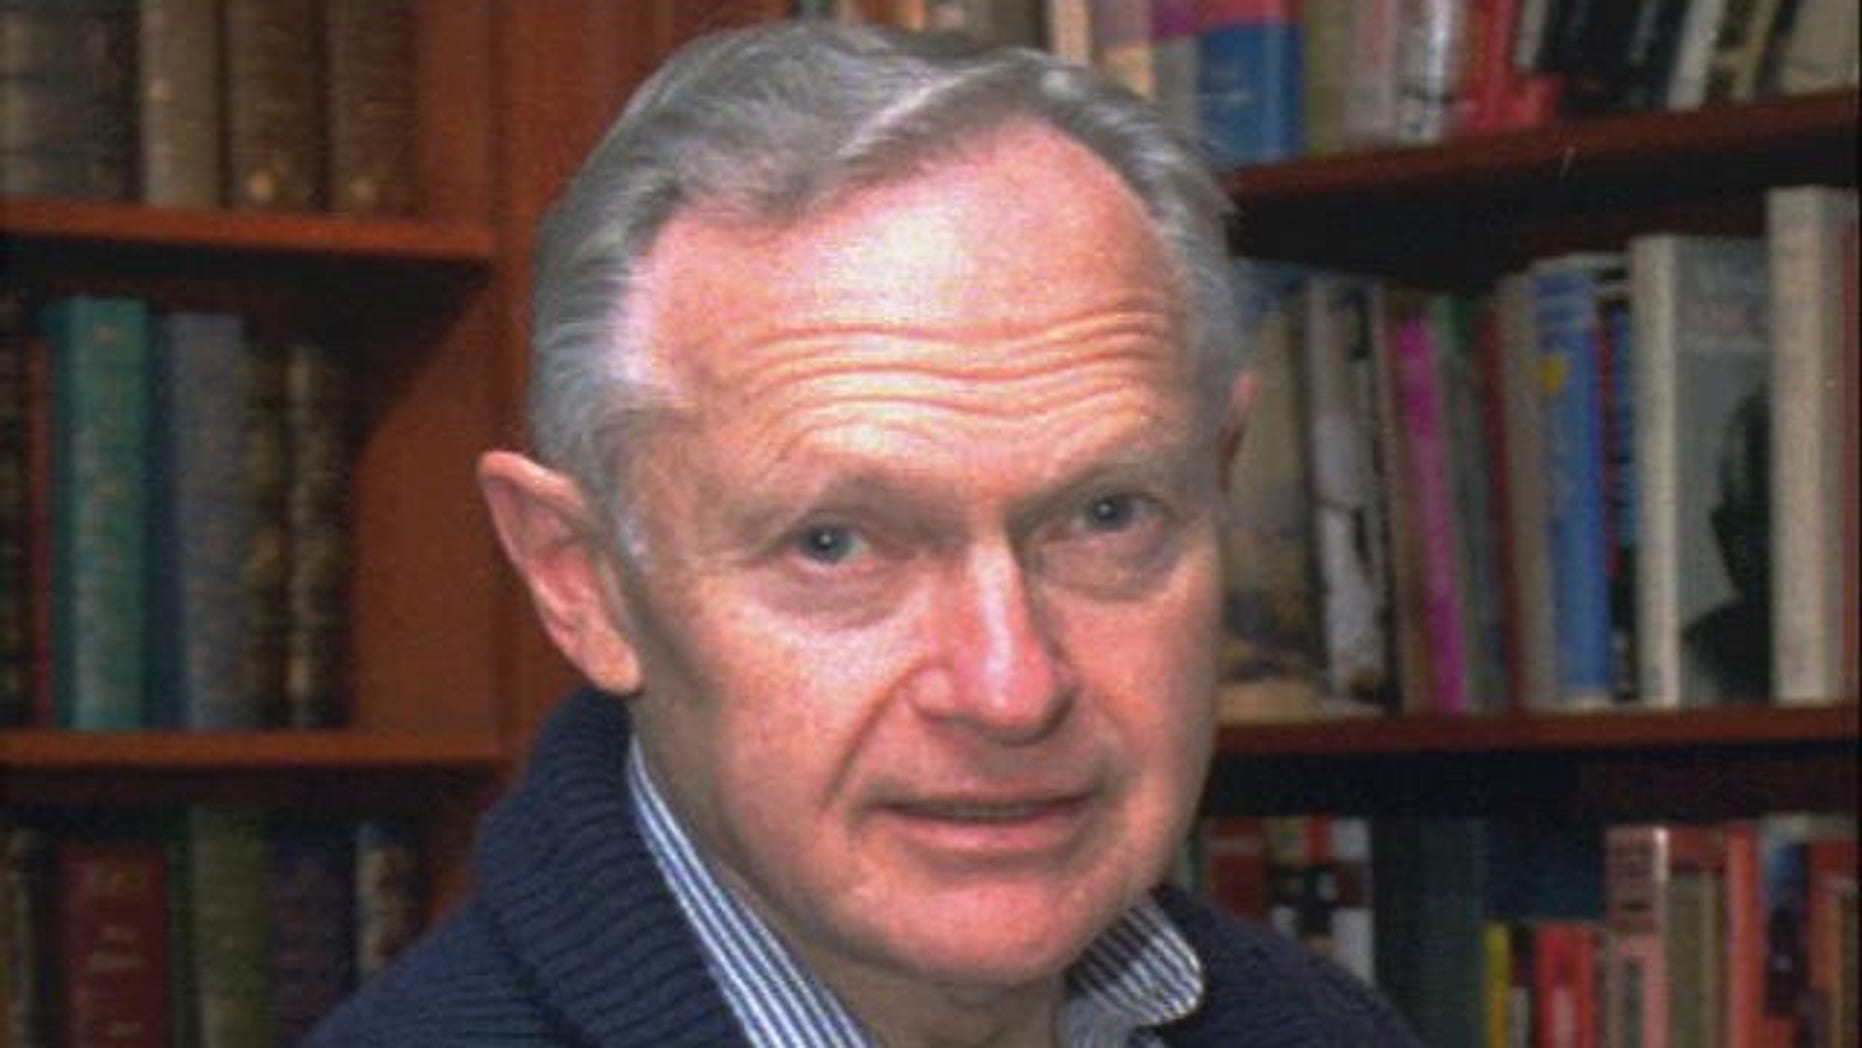 Dr. Sherwin Nuland, author of the best-selling book 'How We Die,' in 1996. Nuland died March 4, 2014 at his home in Hamden, Conn. at age 83. (AP)